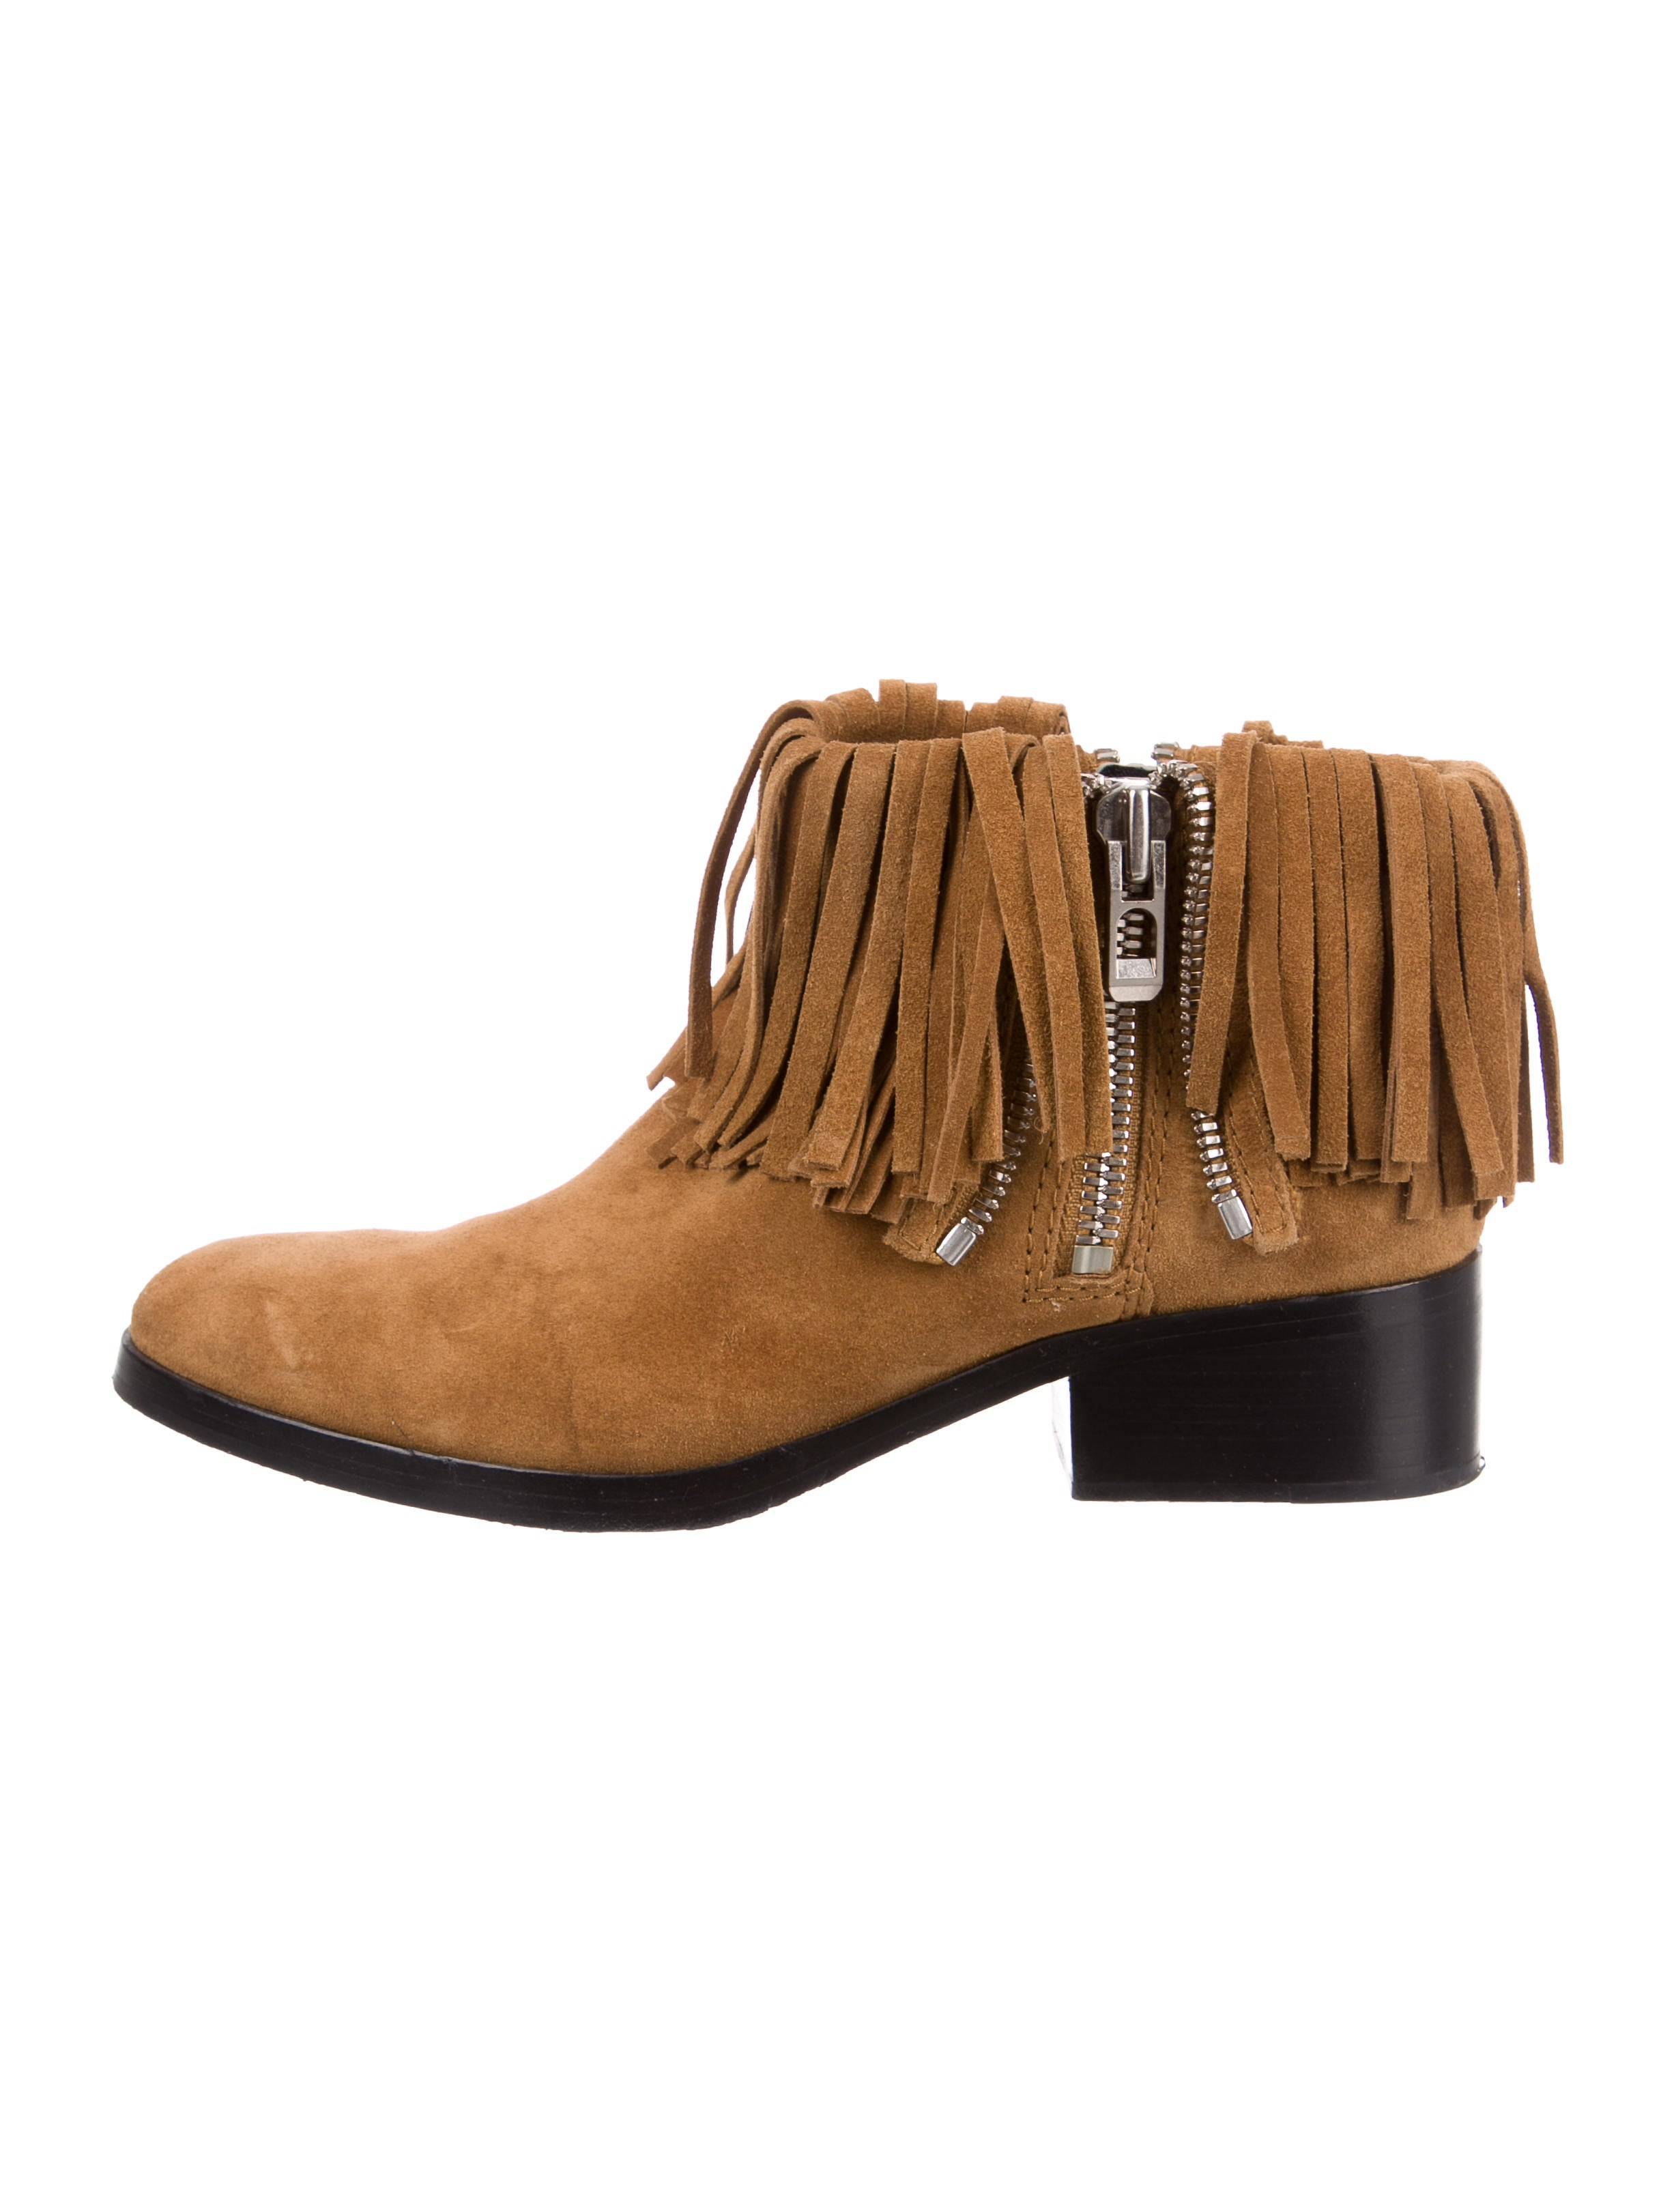 cheap sale low shipping fast delivery cheap online 3.1 Phillip Lim Fringe-Trimmed Ankle Boots buy cheap price agS83